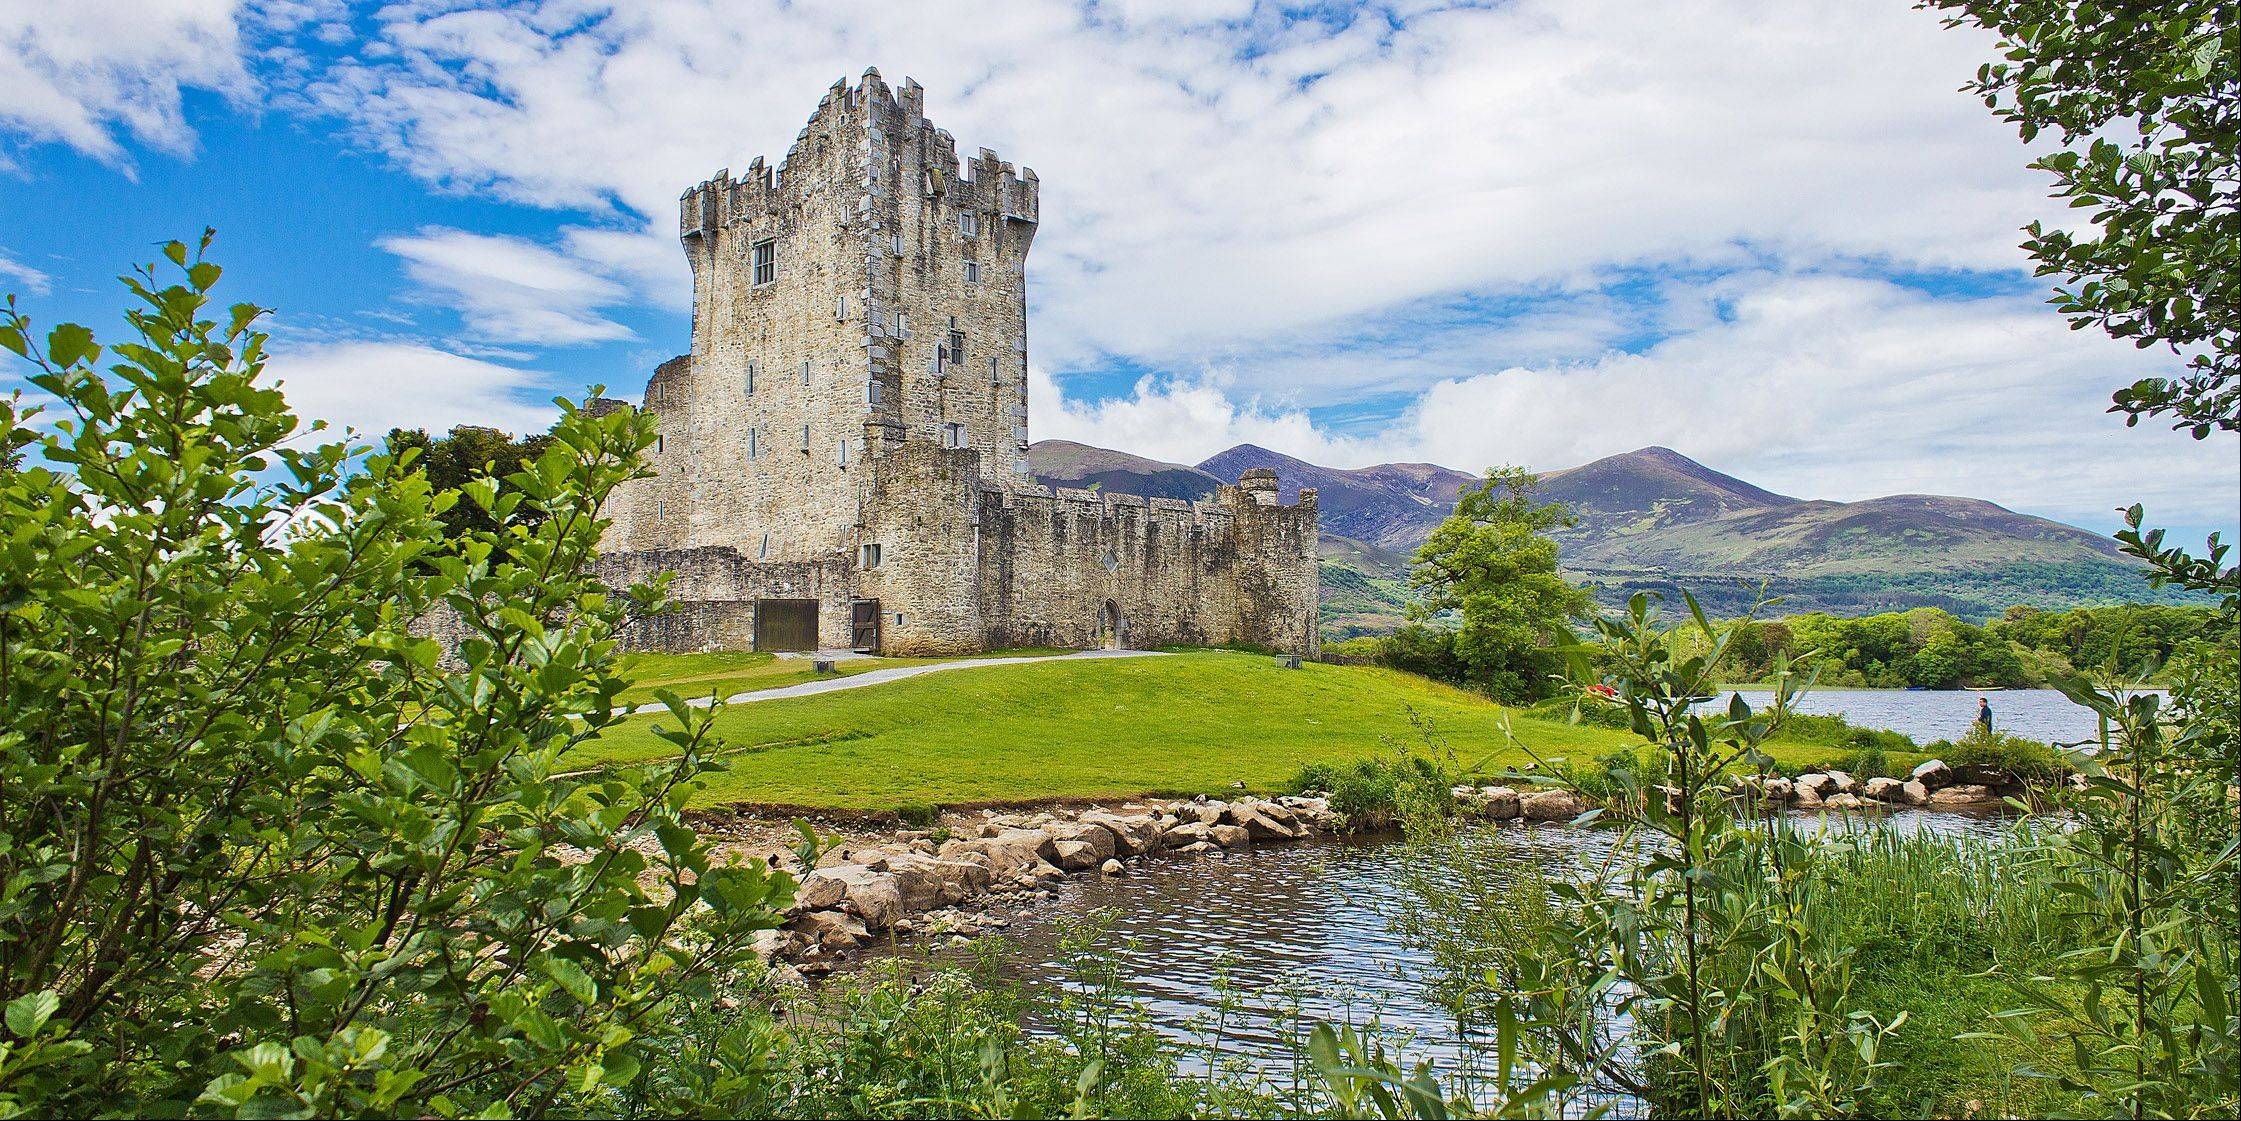 This is one of the abundant castles and ruins found in Ireland. This one is near Killarney in the British Isles.